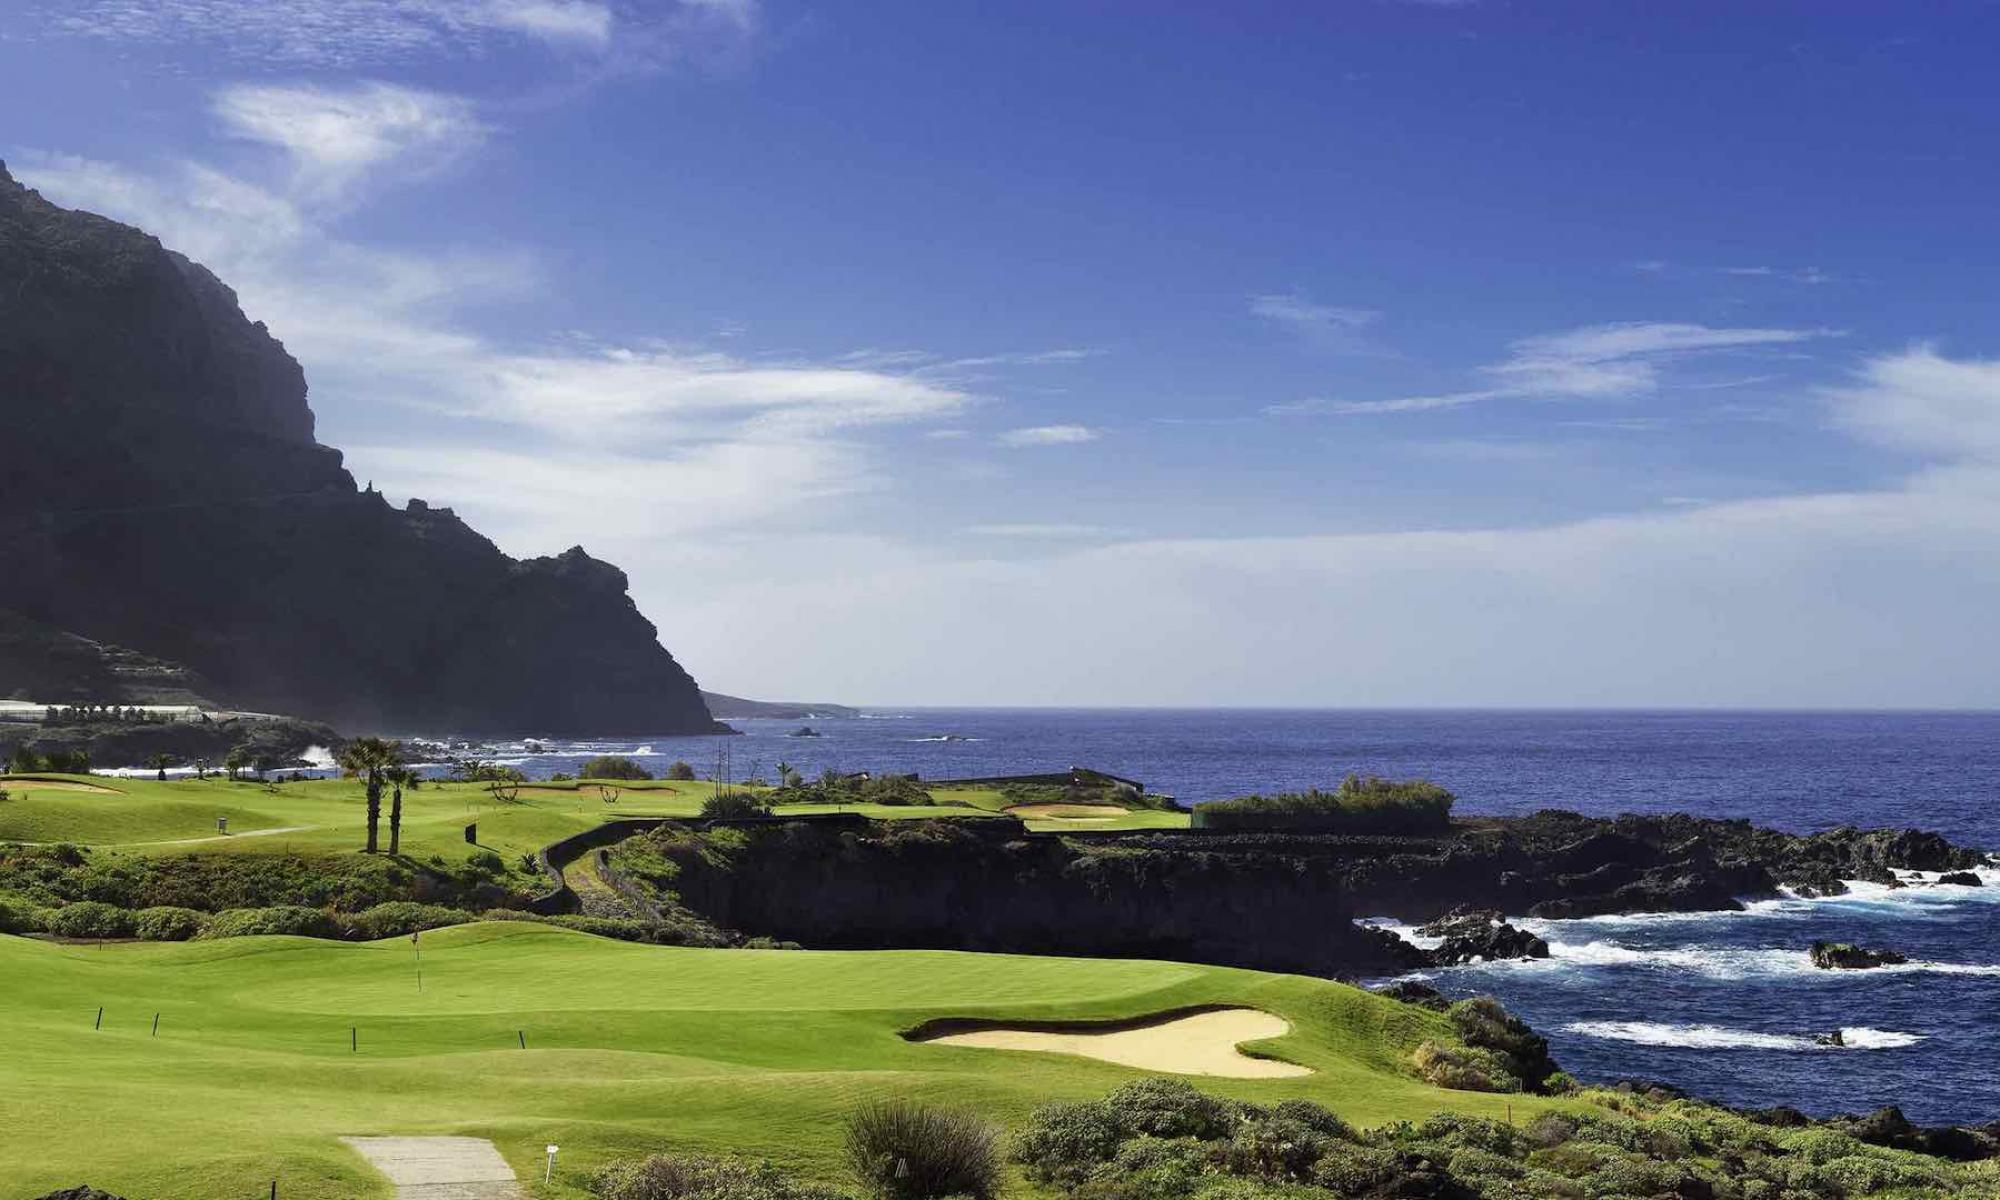 The Buenavista Golf Course's impressive golf course within brilliant Tenerife.